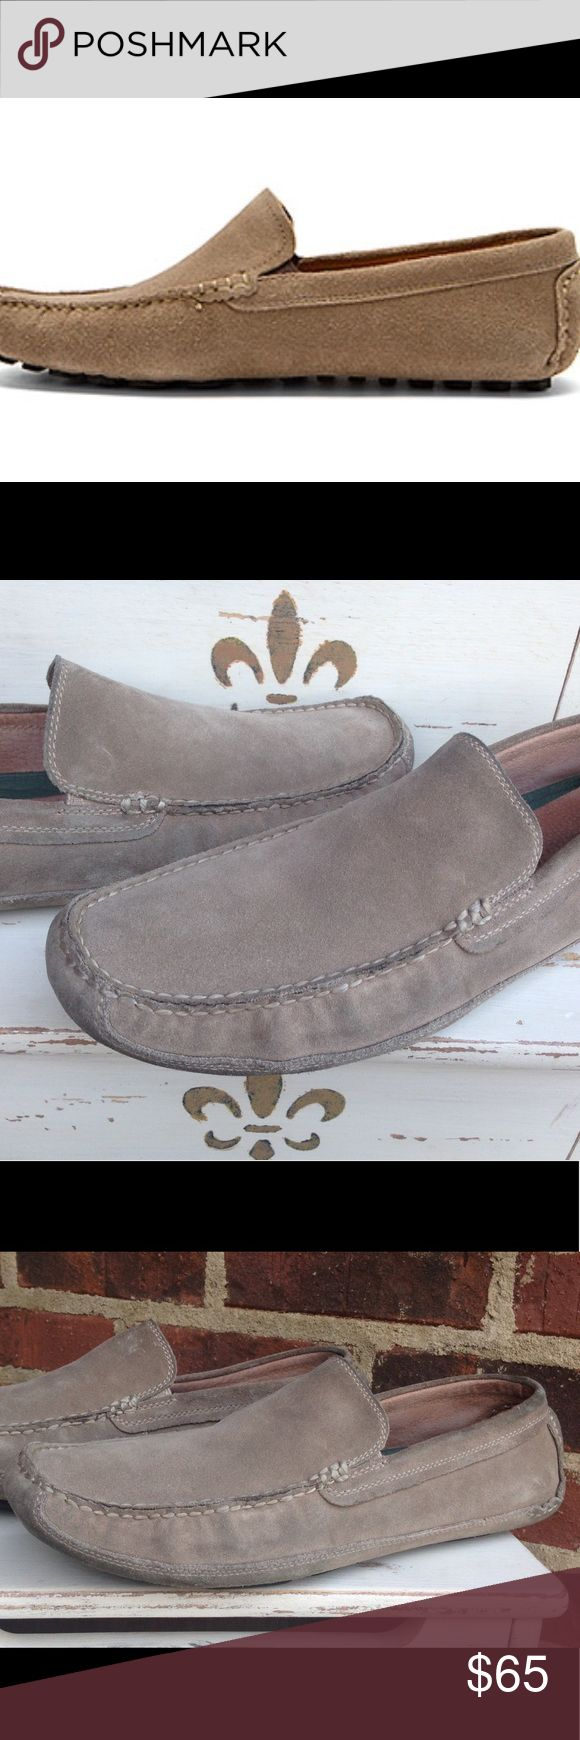 Clarks Clutch Fluid Suede Taupe Slip On Loafer 10 Excellent Used Condition - Gently Used - Size 10 - If you have any questions or concerns please let me know. Thank you for looking at my listing. Have a great day! Clarks Shoes Loafers & Slip-Ons